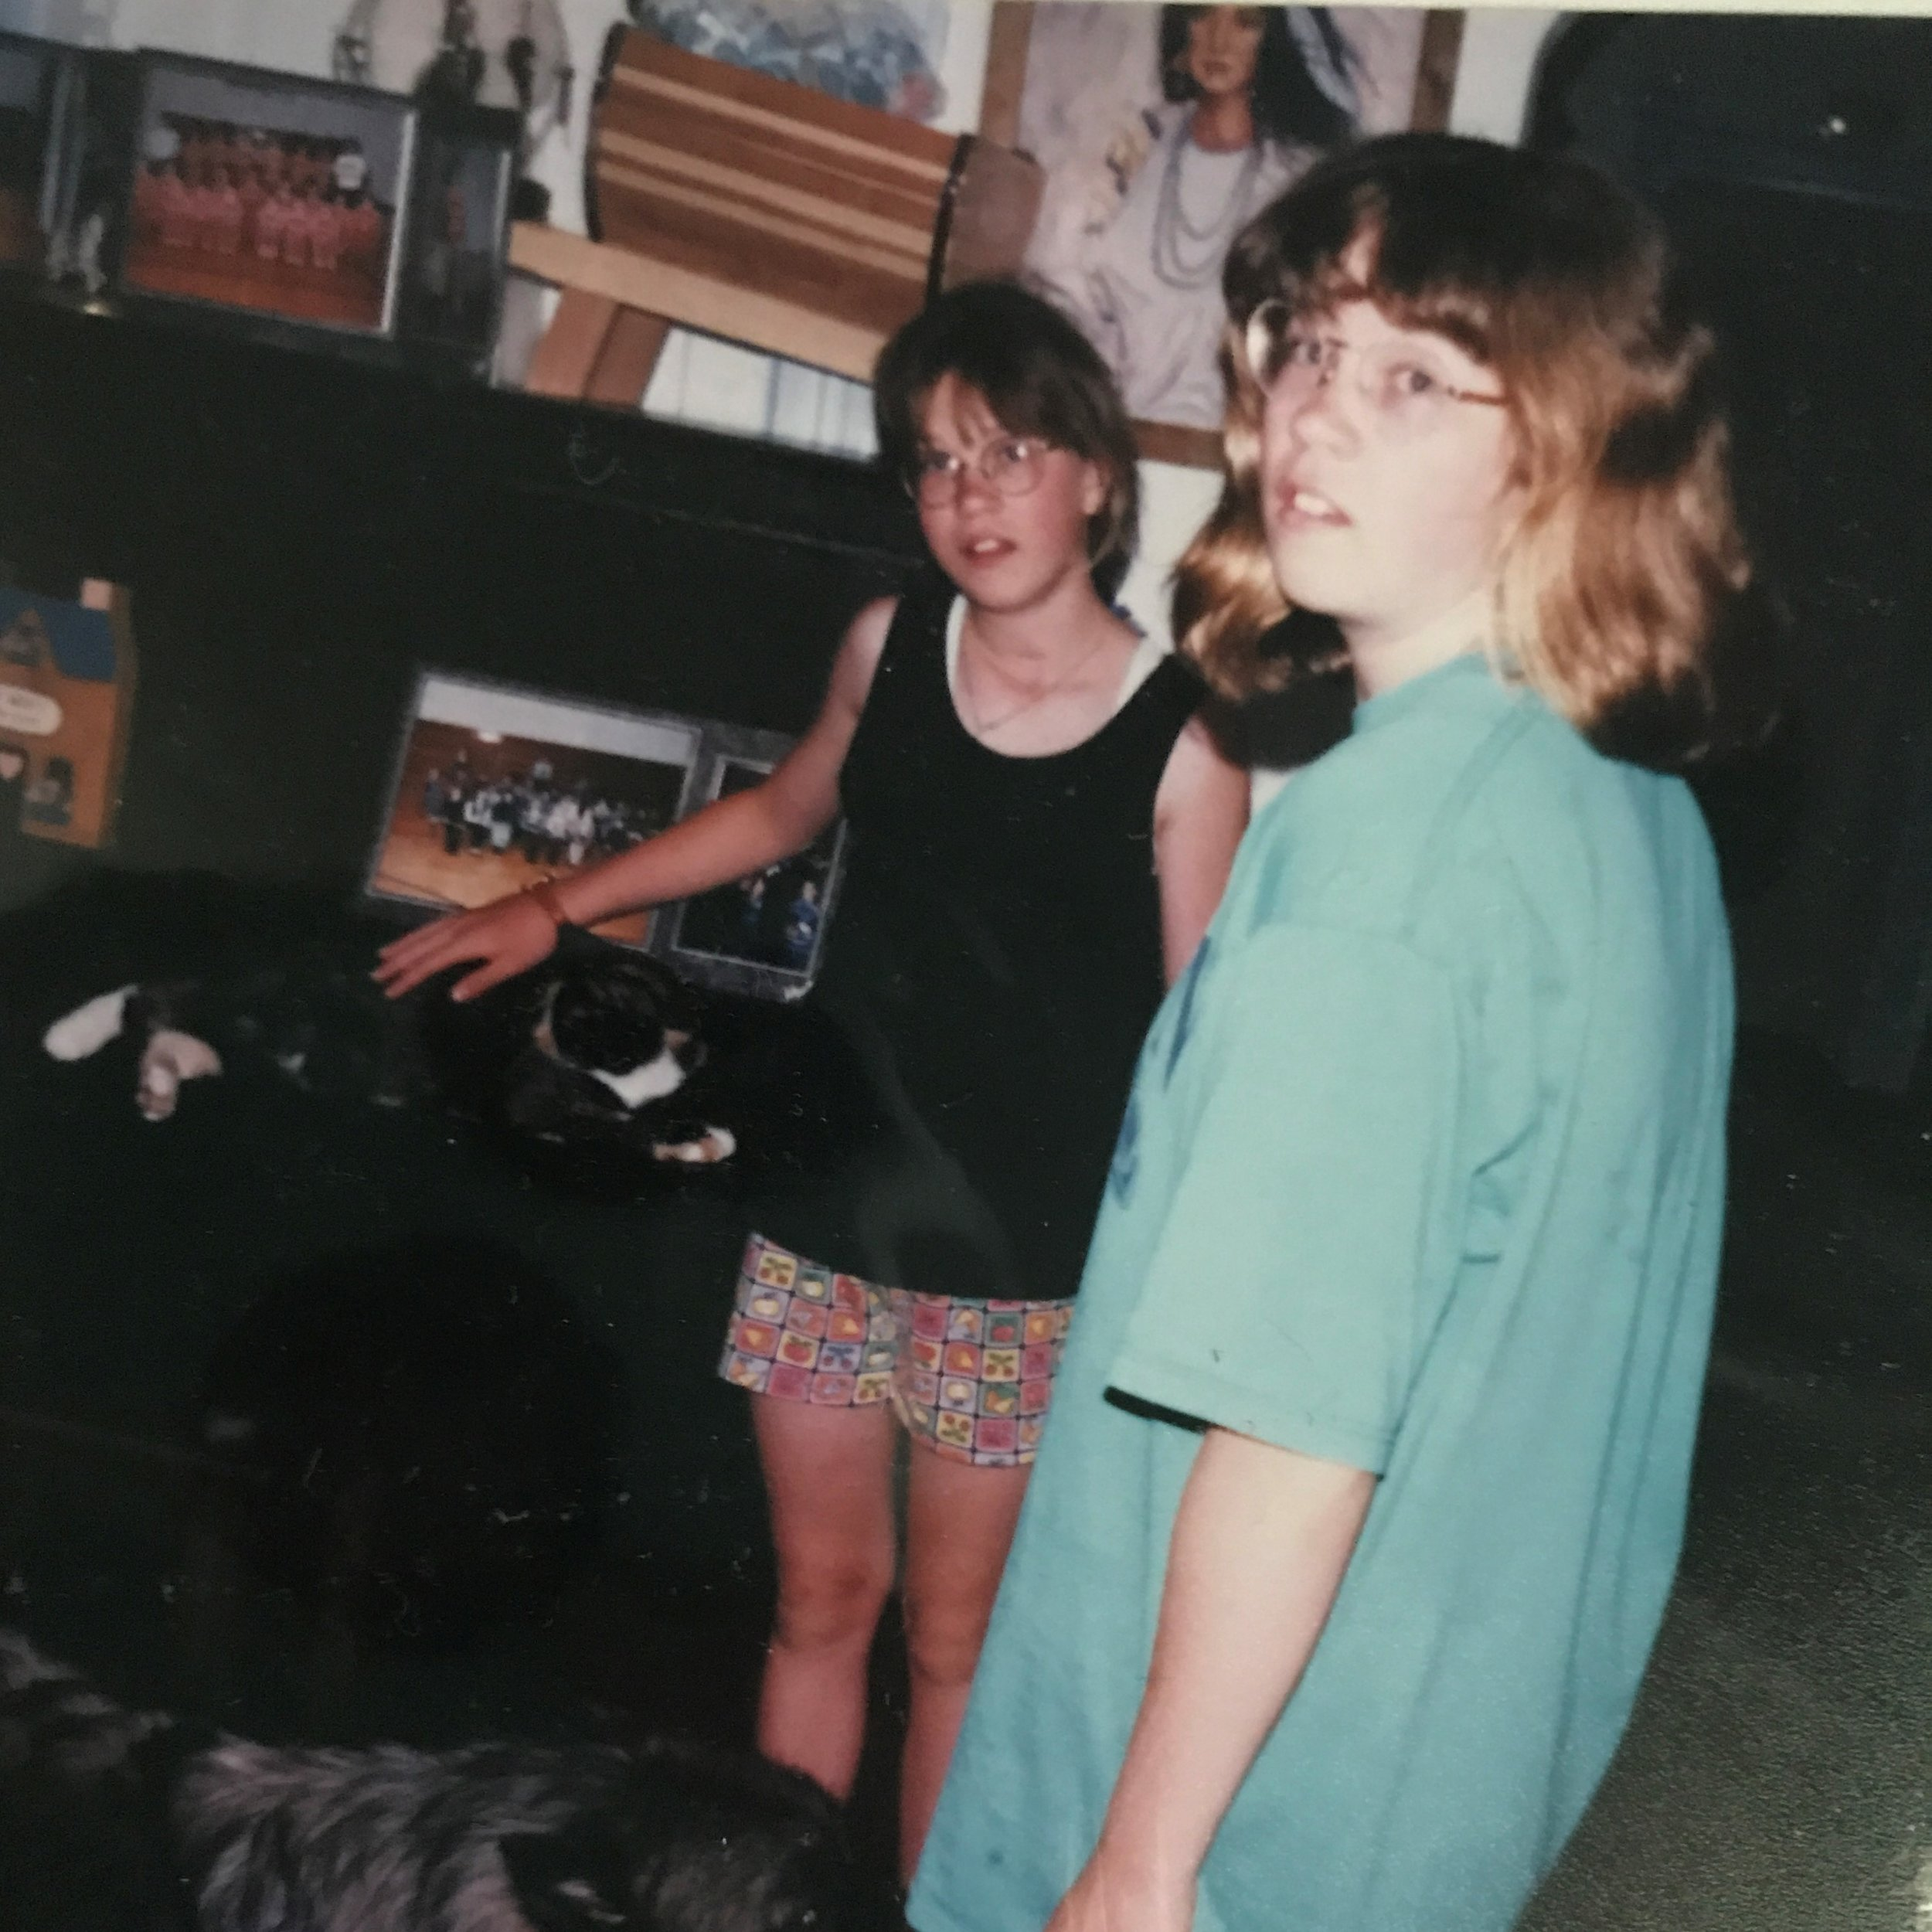 Crystal and Michelle. Photo taken sometime around 1998-1999.